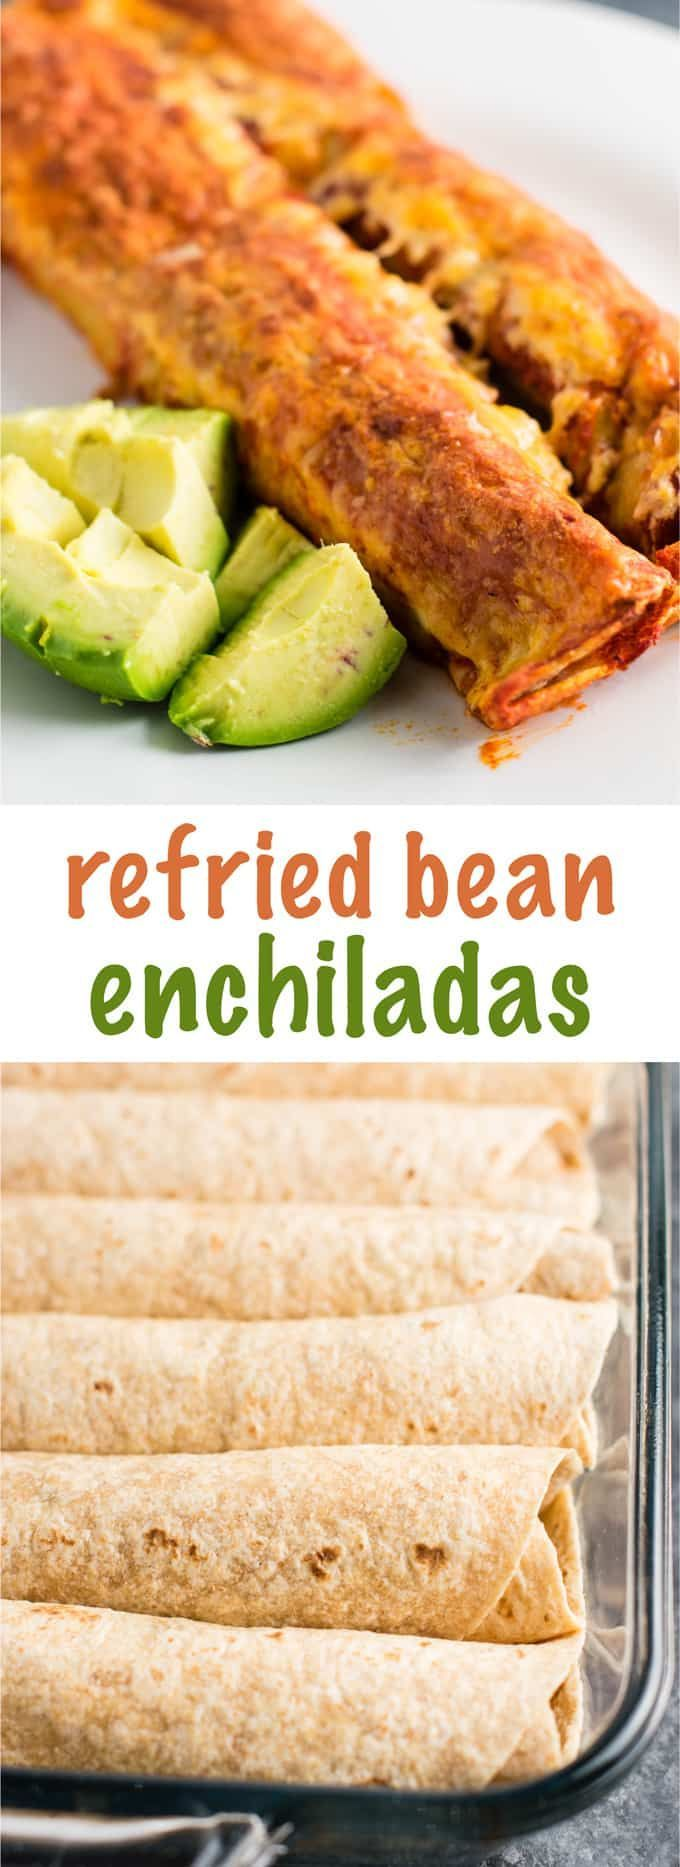 Easy Refried Bean Enchiladas Recipe - Build Your Bite Easy Refried Bean Enchiladas Recipe - Build Your Bite ... -